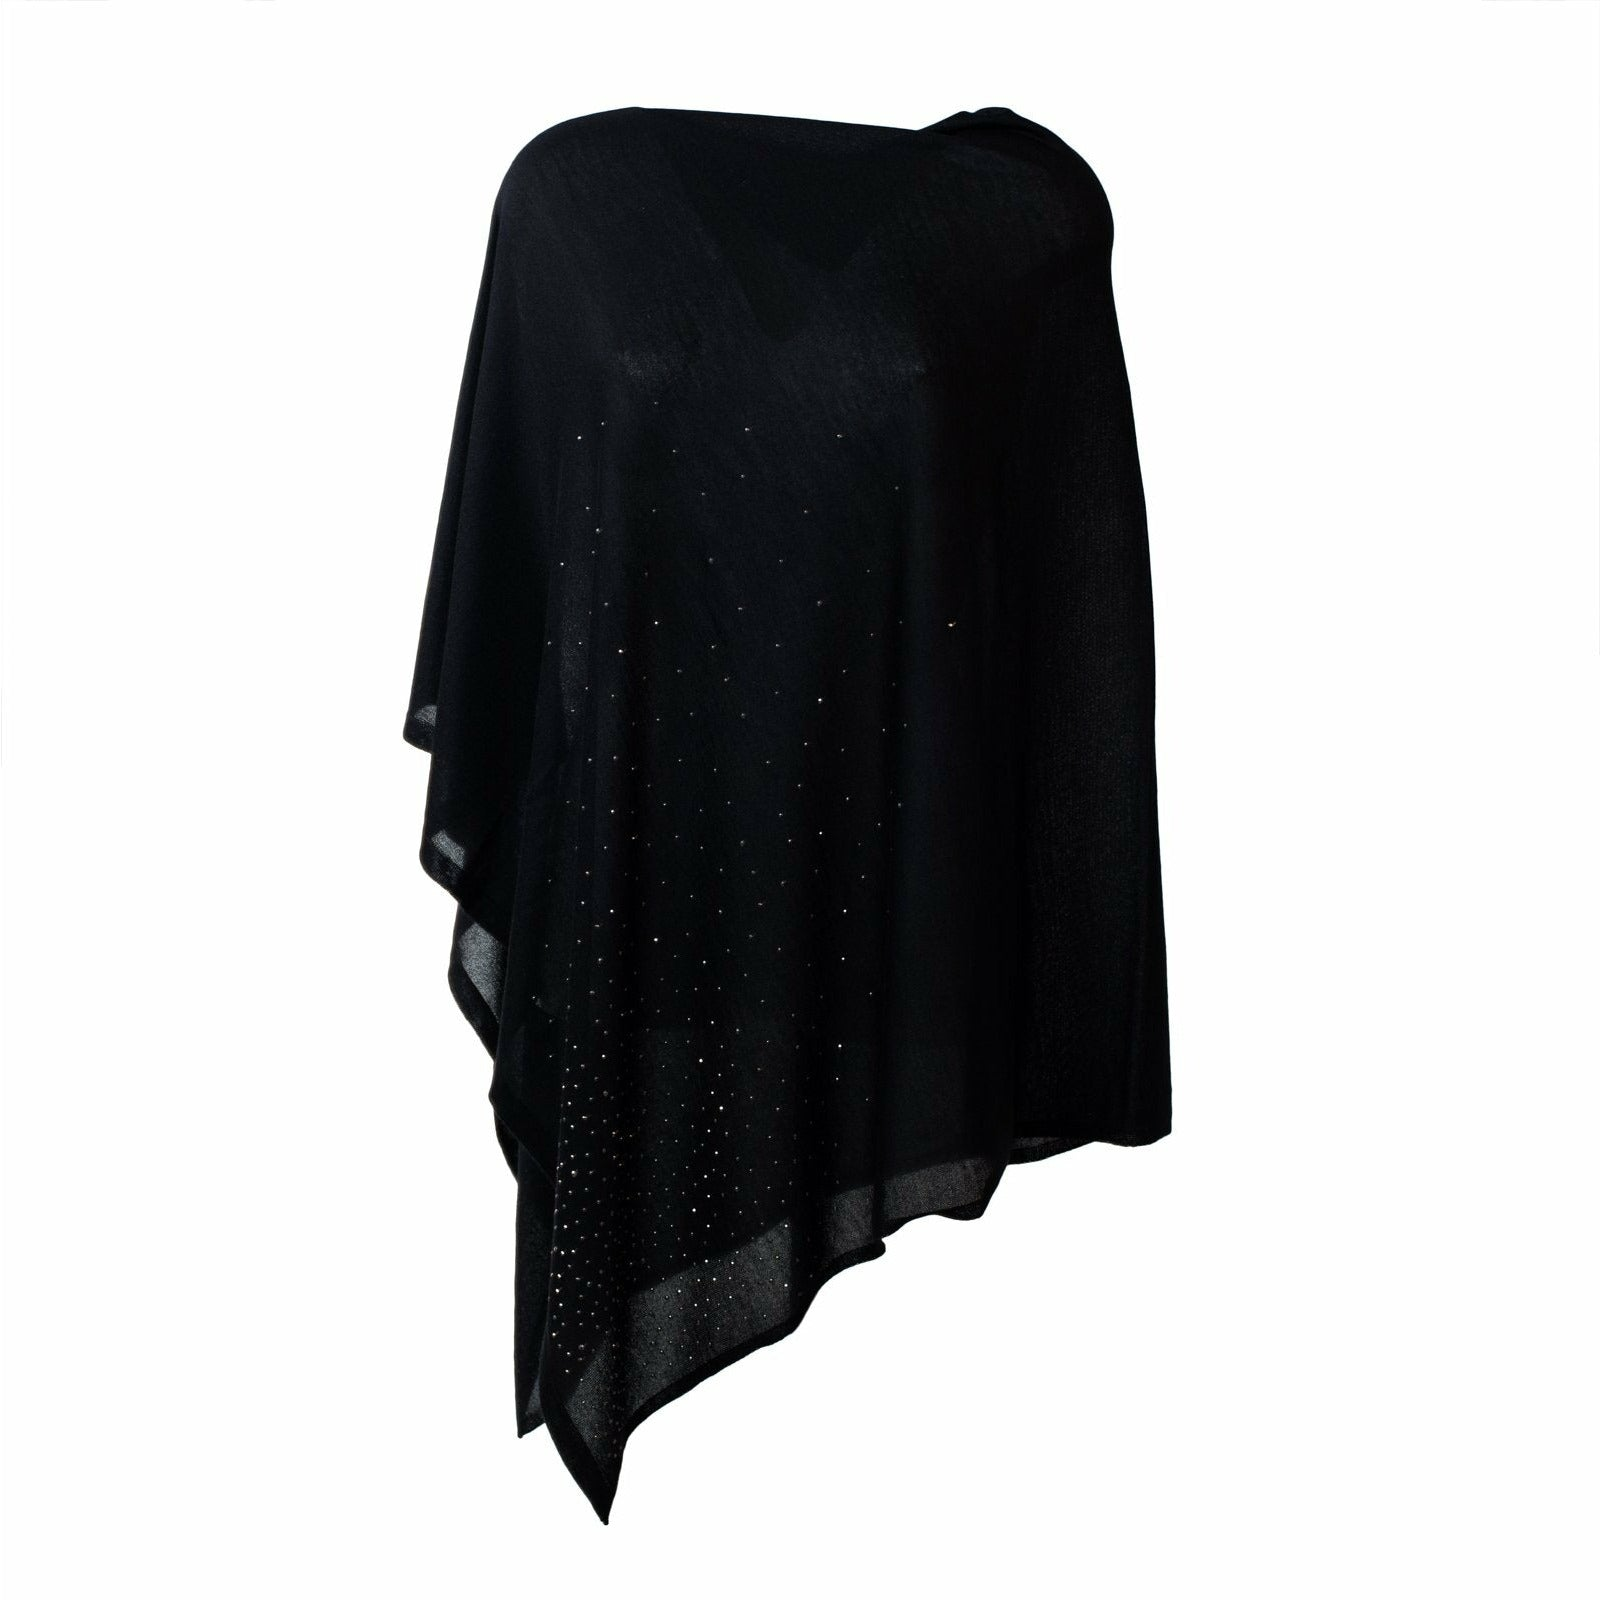 Large Pashmina Poncho With Studs in Black - Jennifer Tattanelli